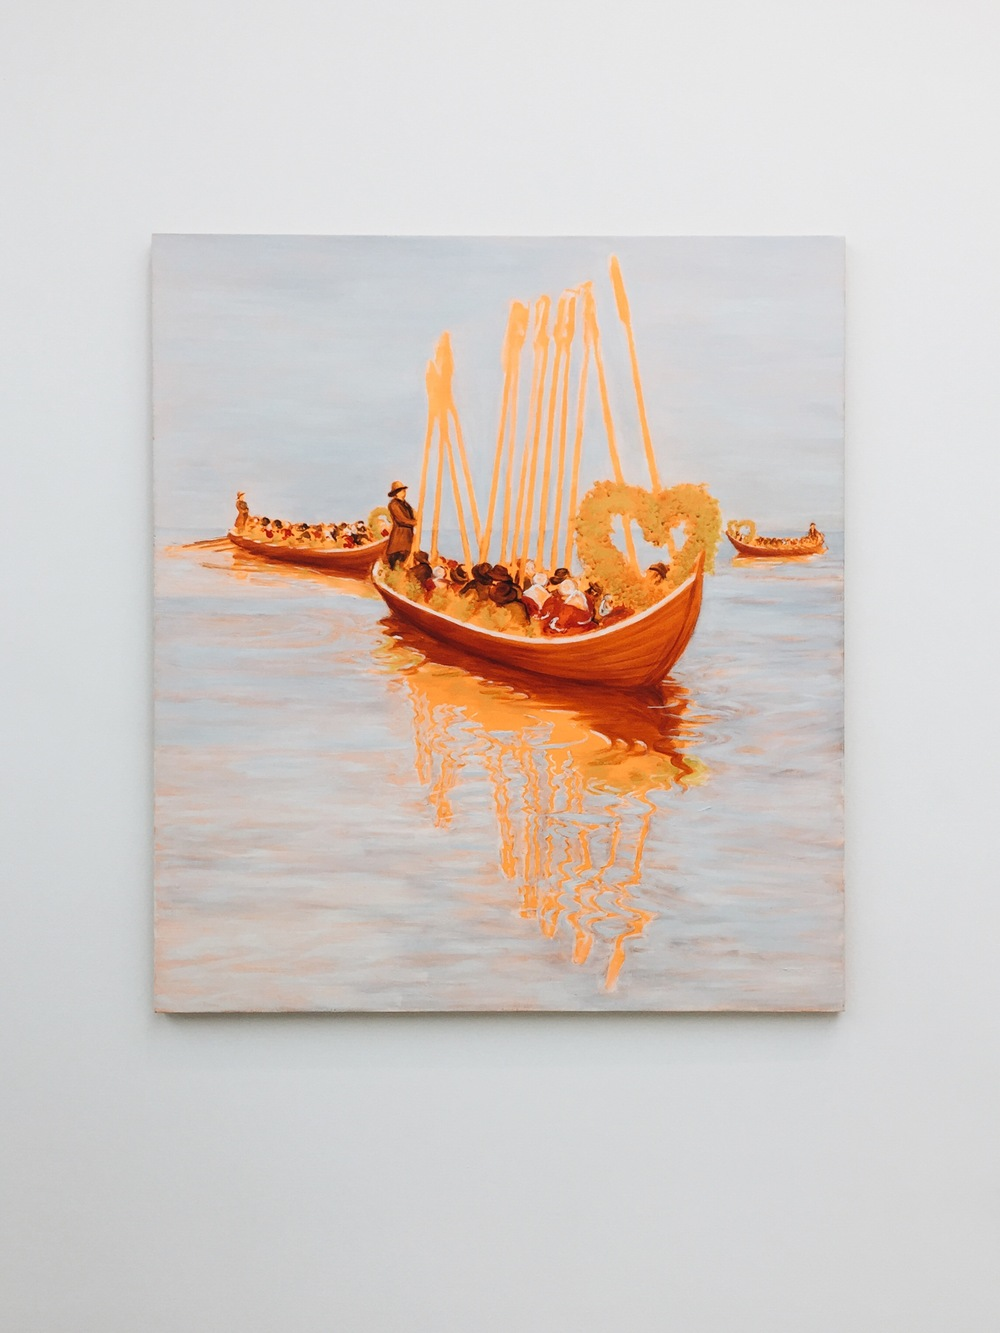 Church Boats by Sigrid Holmwood, 2007